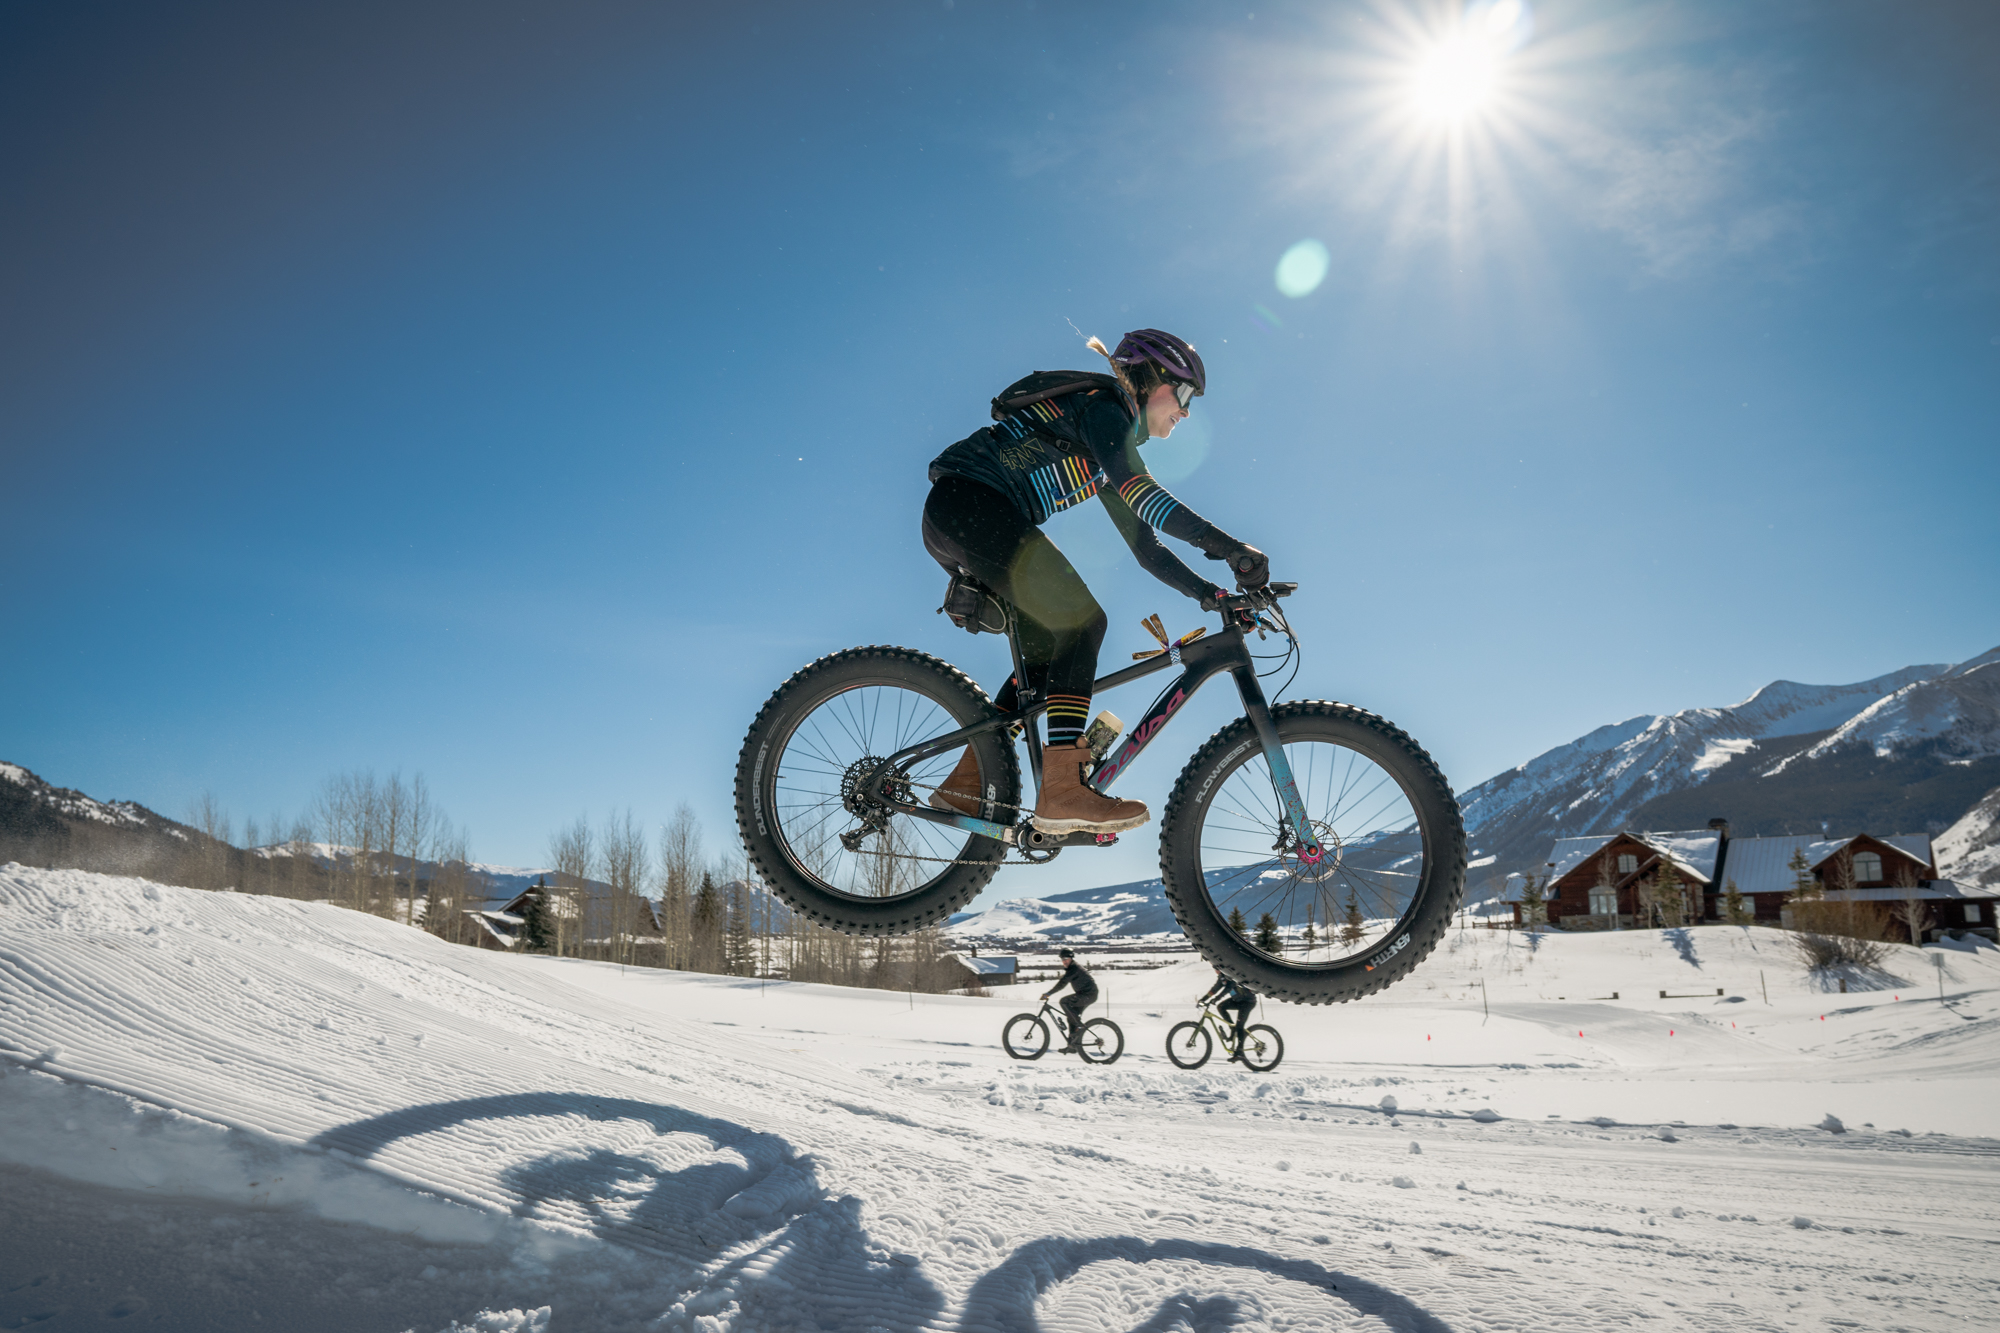 A person wearing a 45NRTH shirt gets airborne on their fat bike over a groomed trail